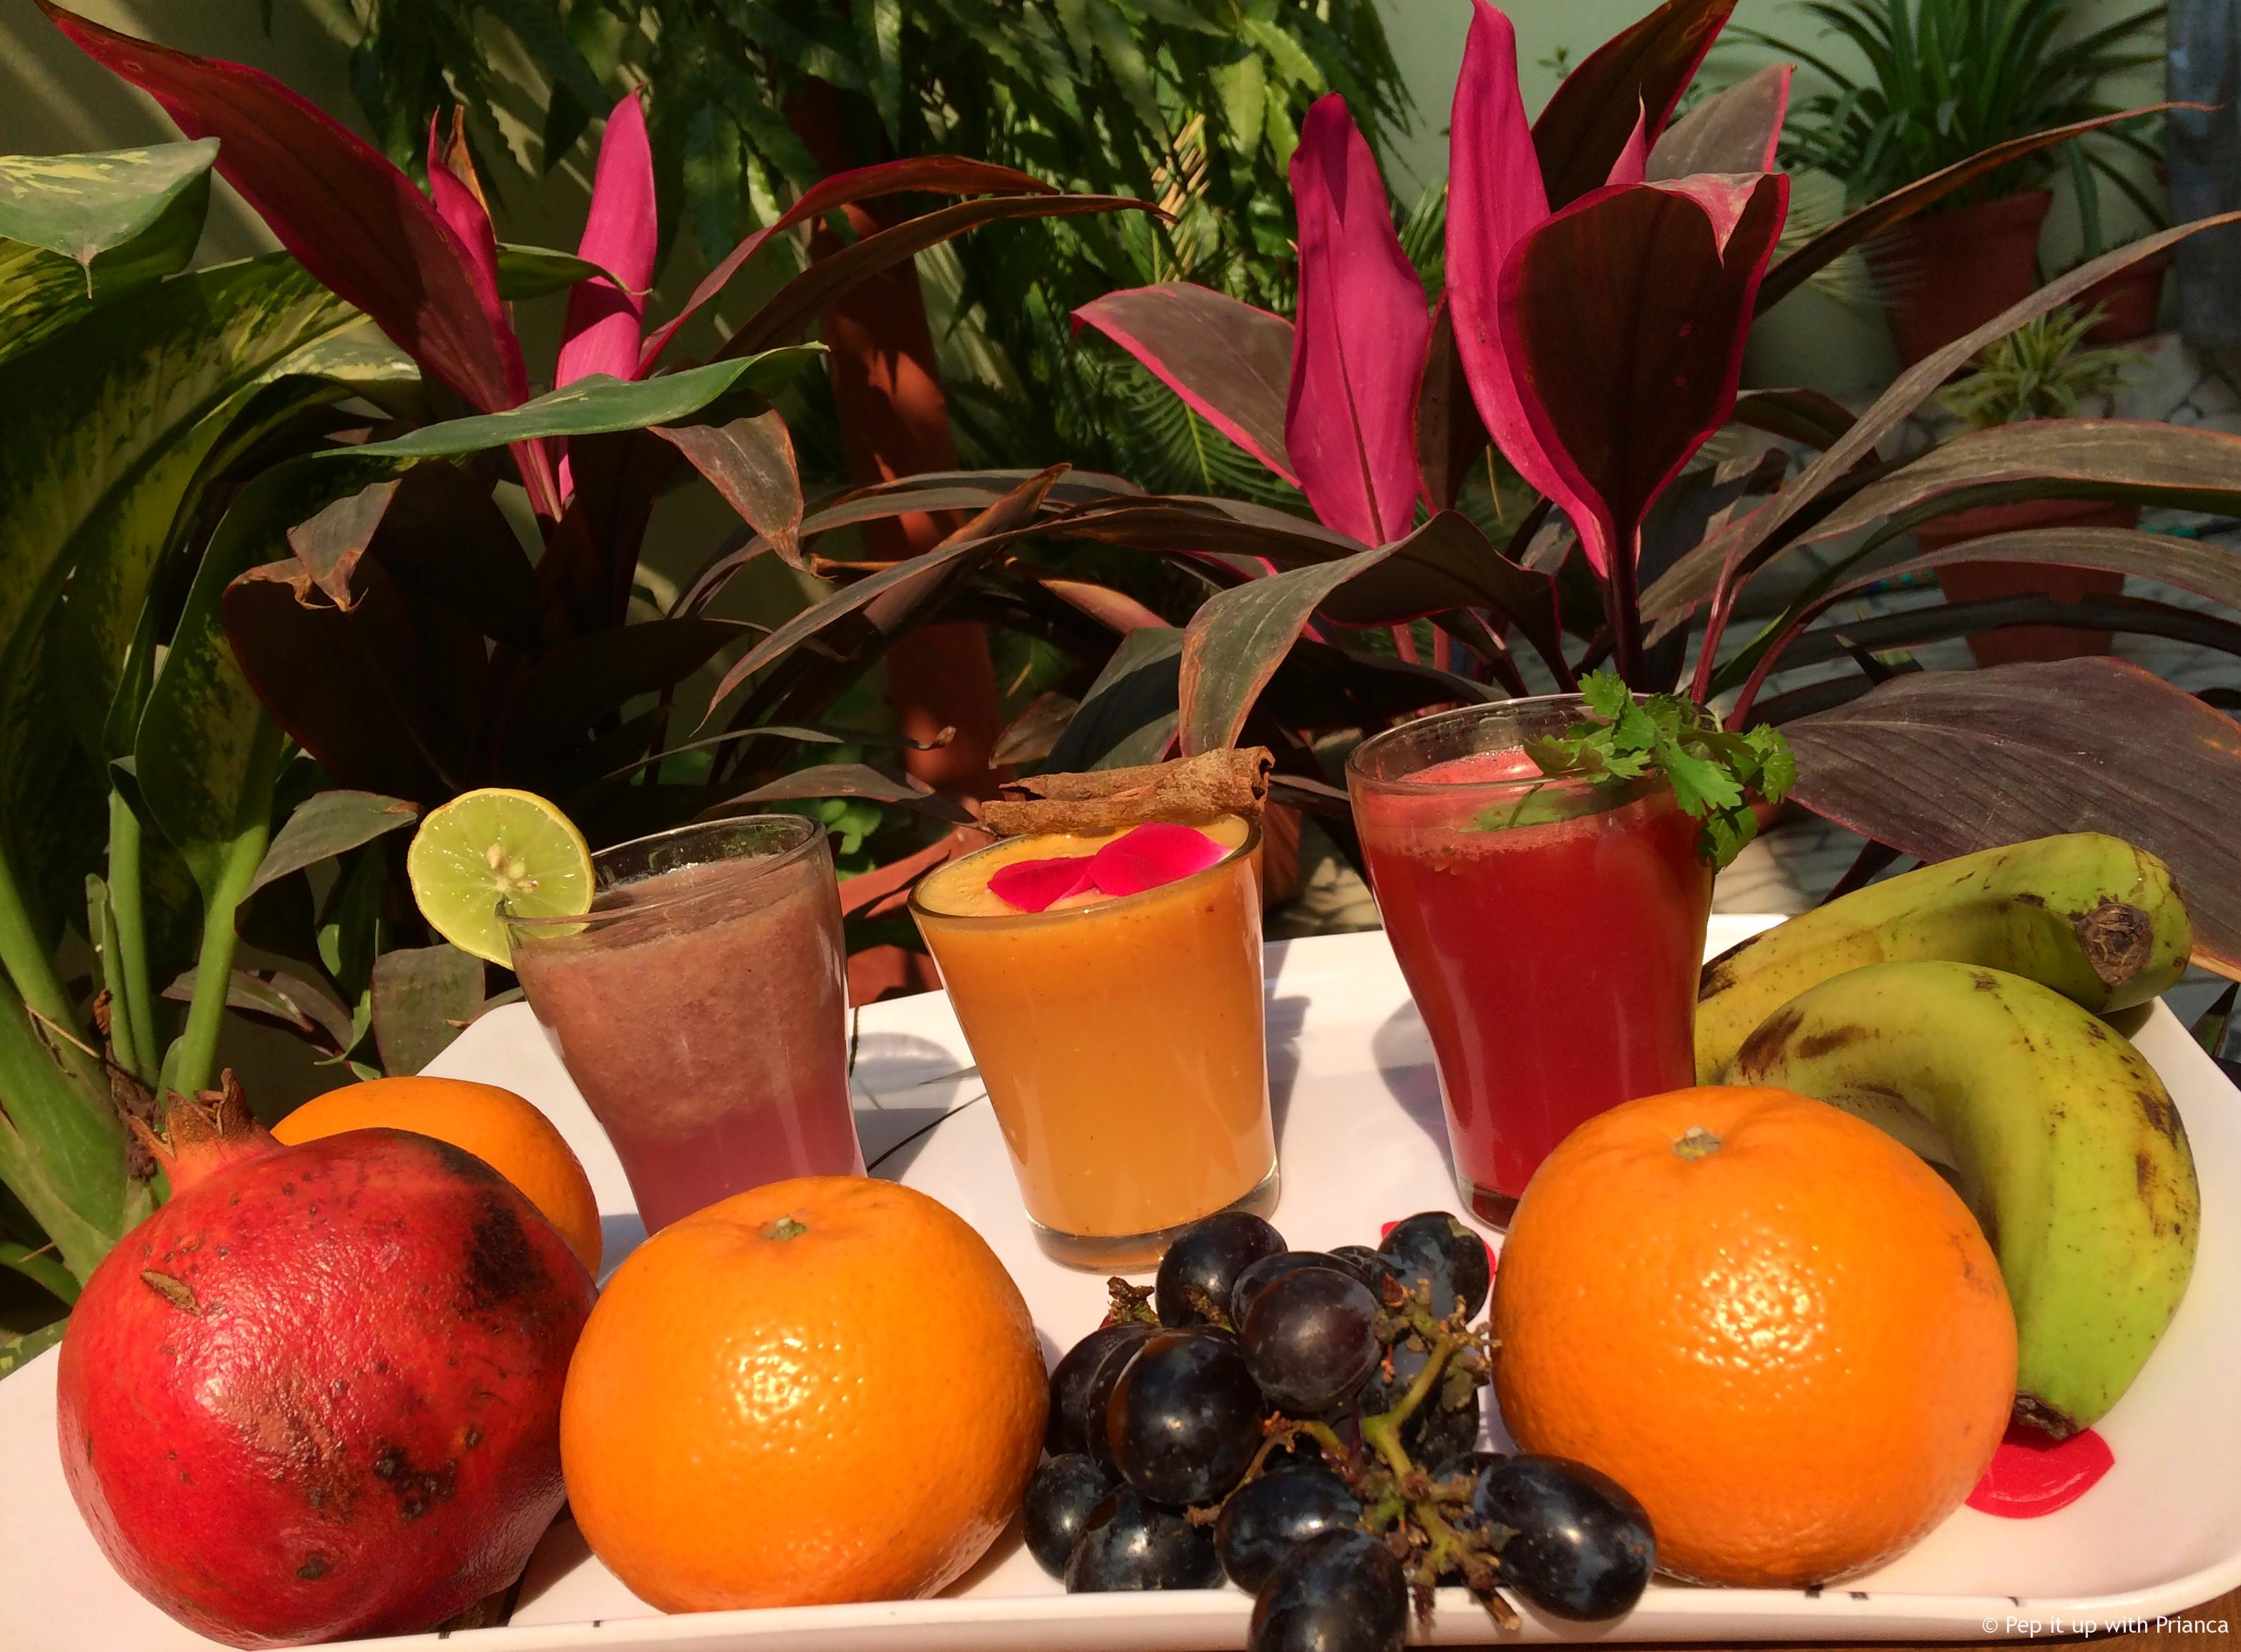 Homemade fresh juices